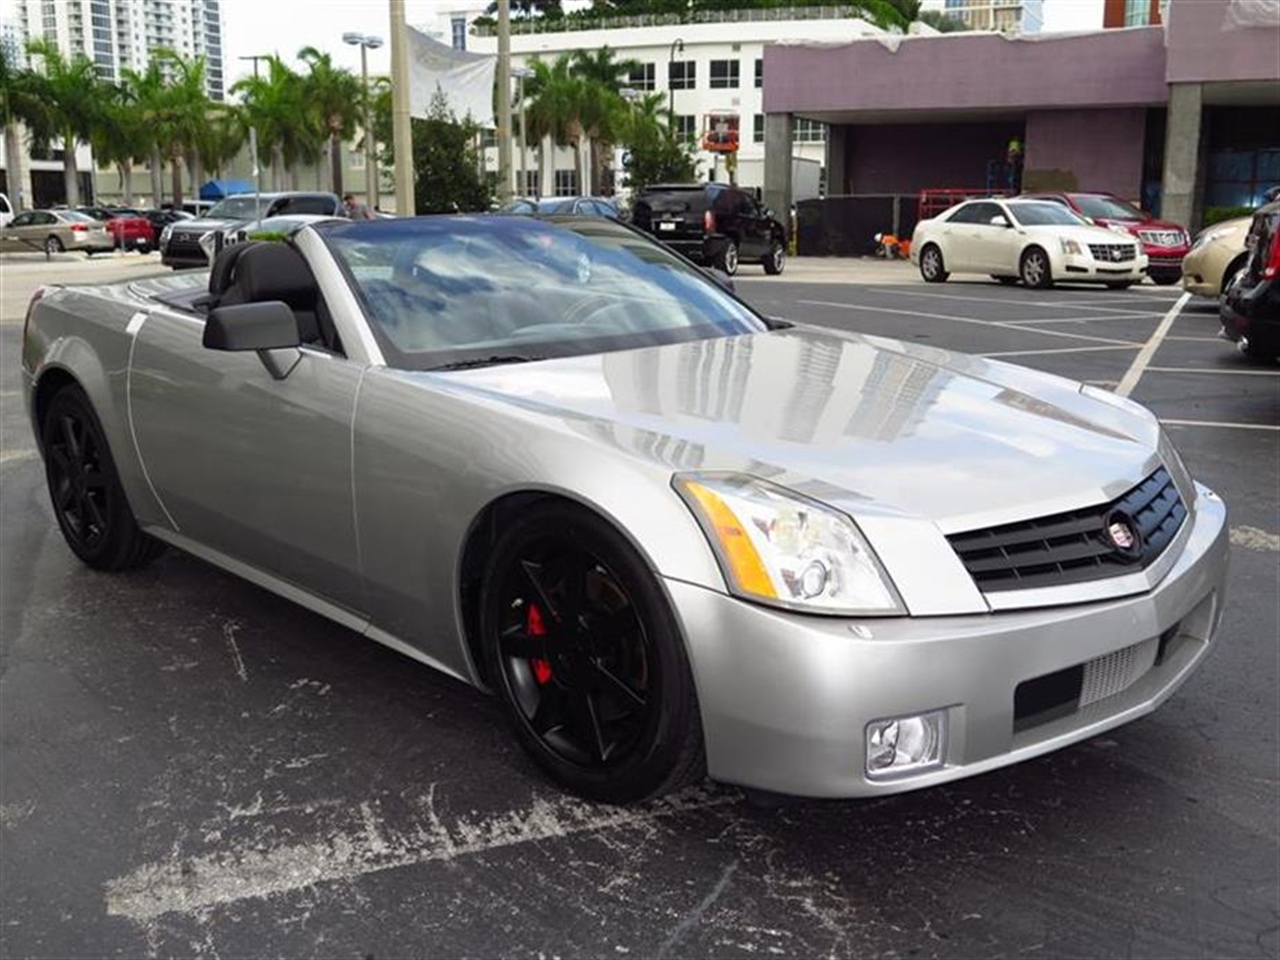 2007 CADILLAC XLR 2dr Convertible 25742 miles Accents interior aluminum on center console left-